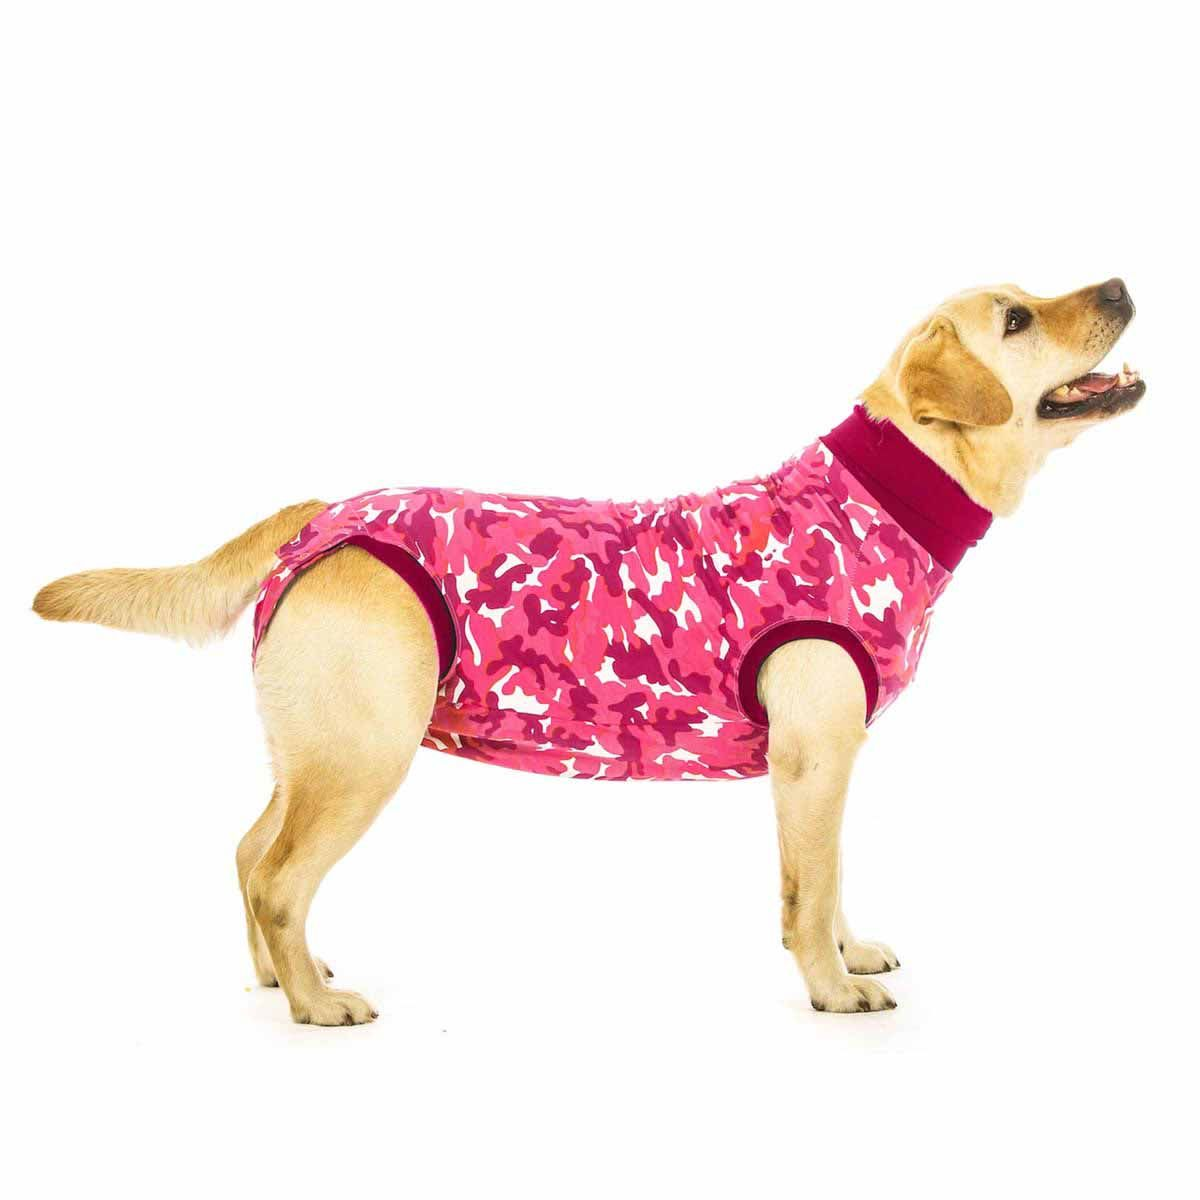 Suitical Dog Recovery Suit Pink Camo Pink Camo Pet Paws Dog Vest